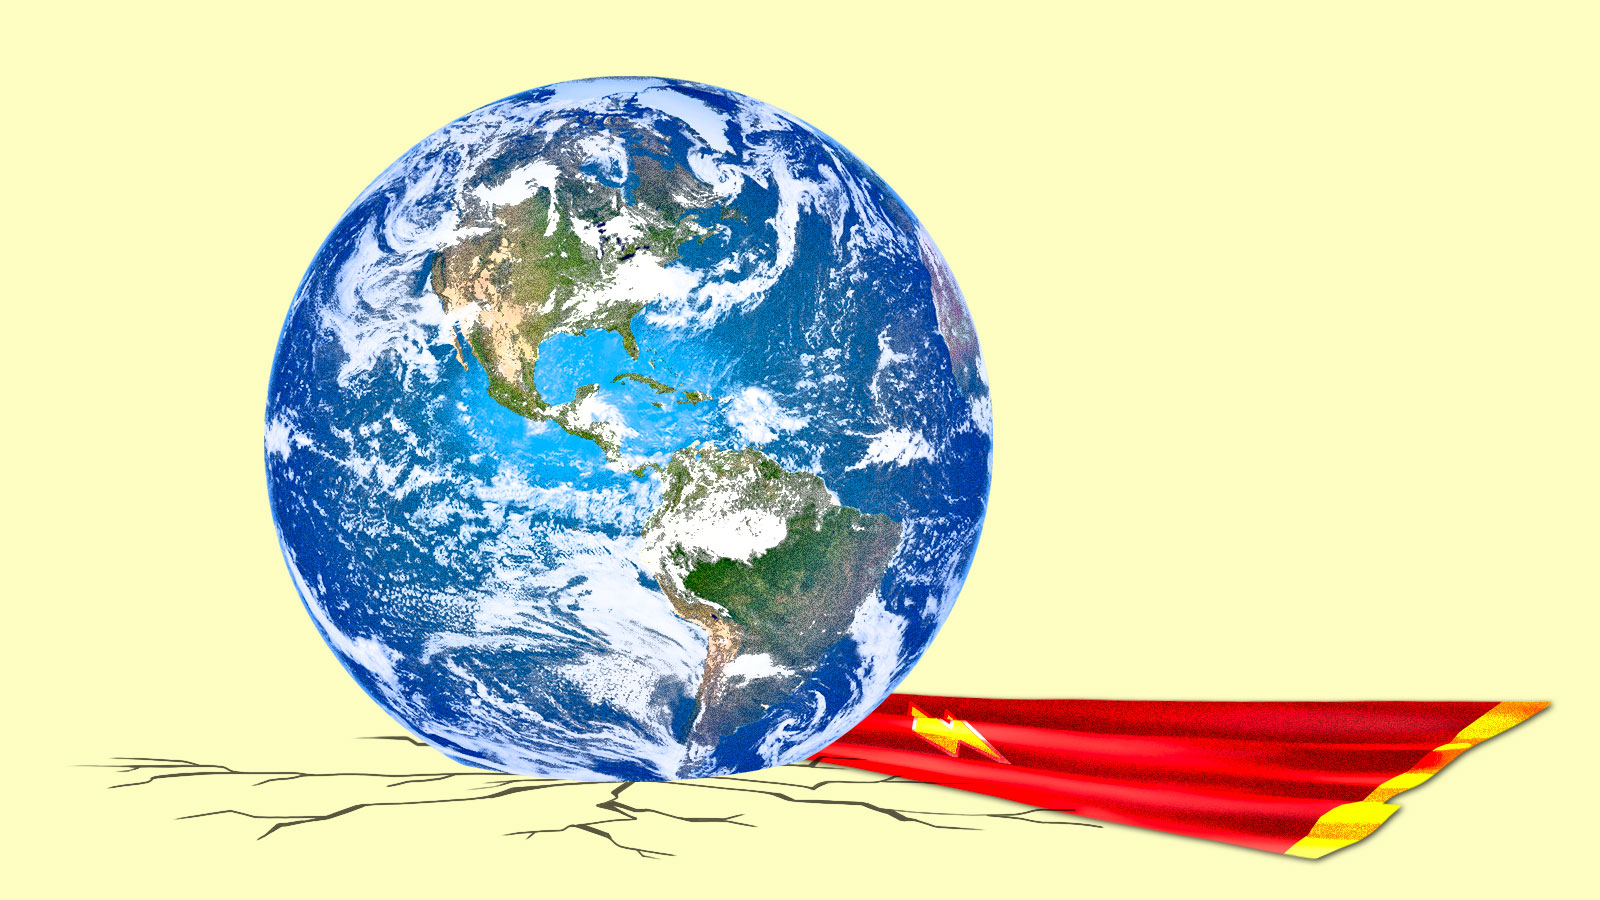 Collage: Earth on top of a superhero cape